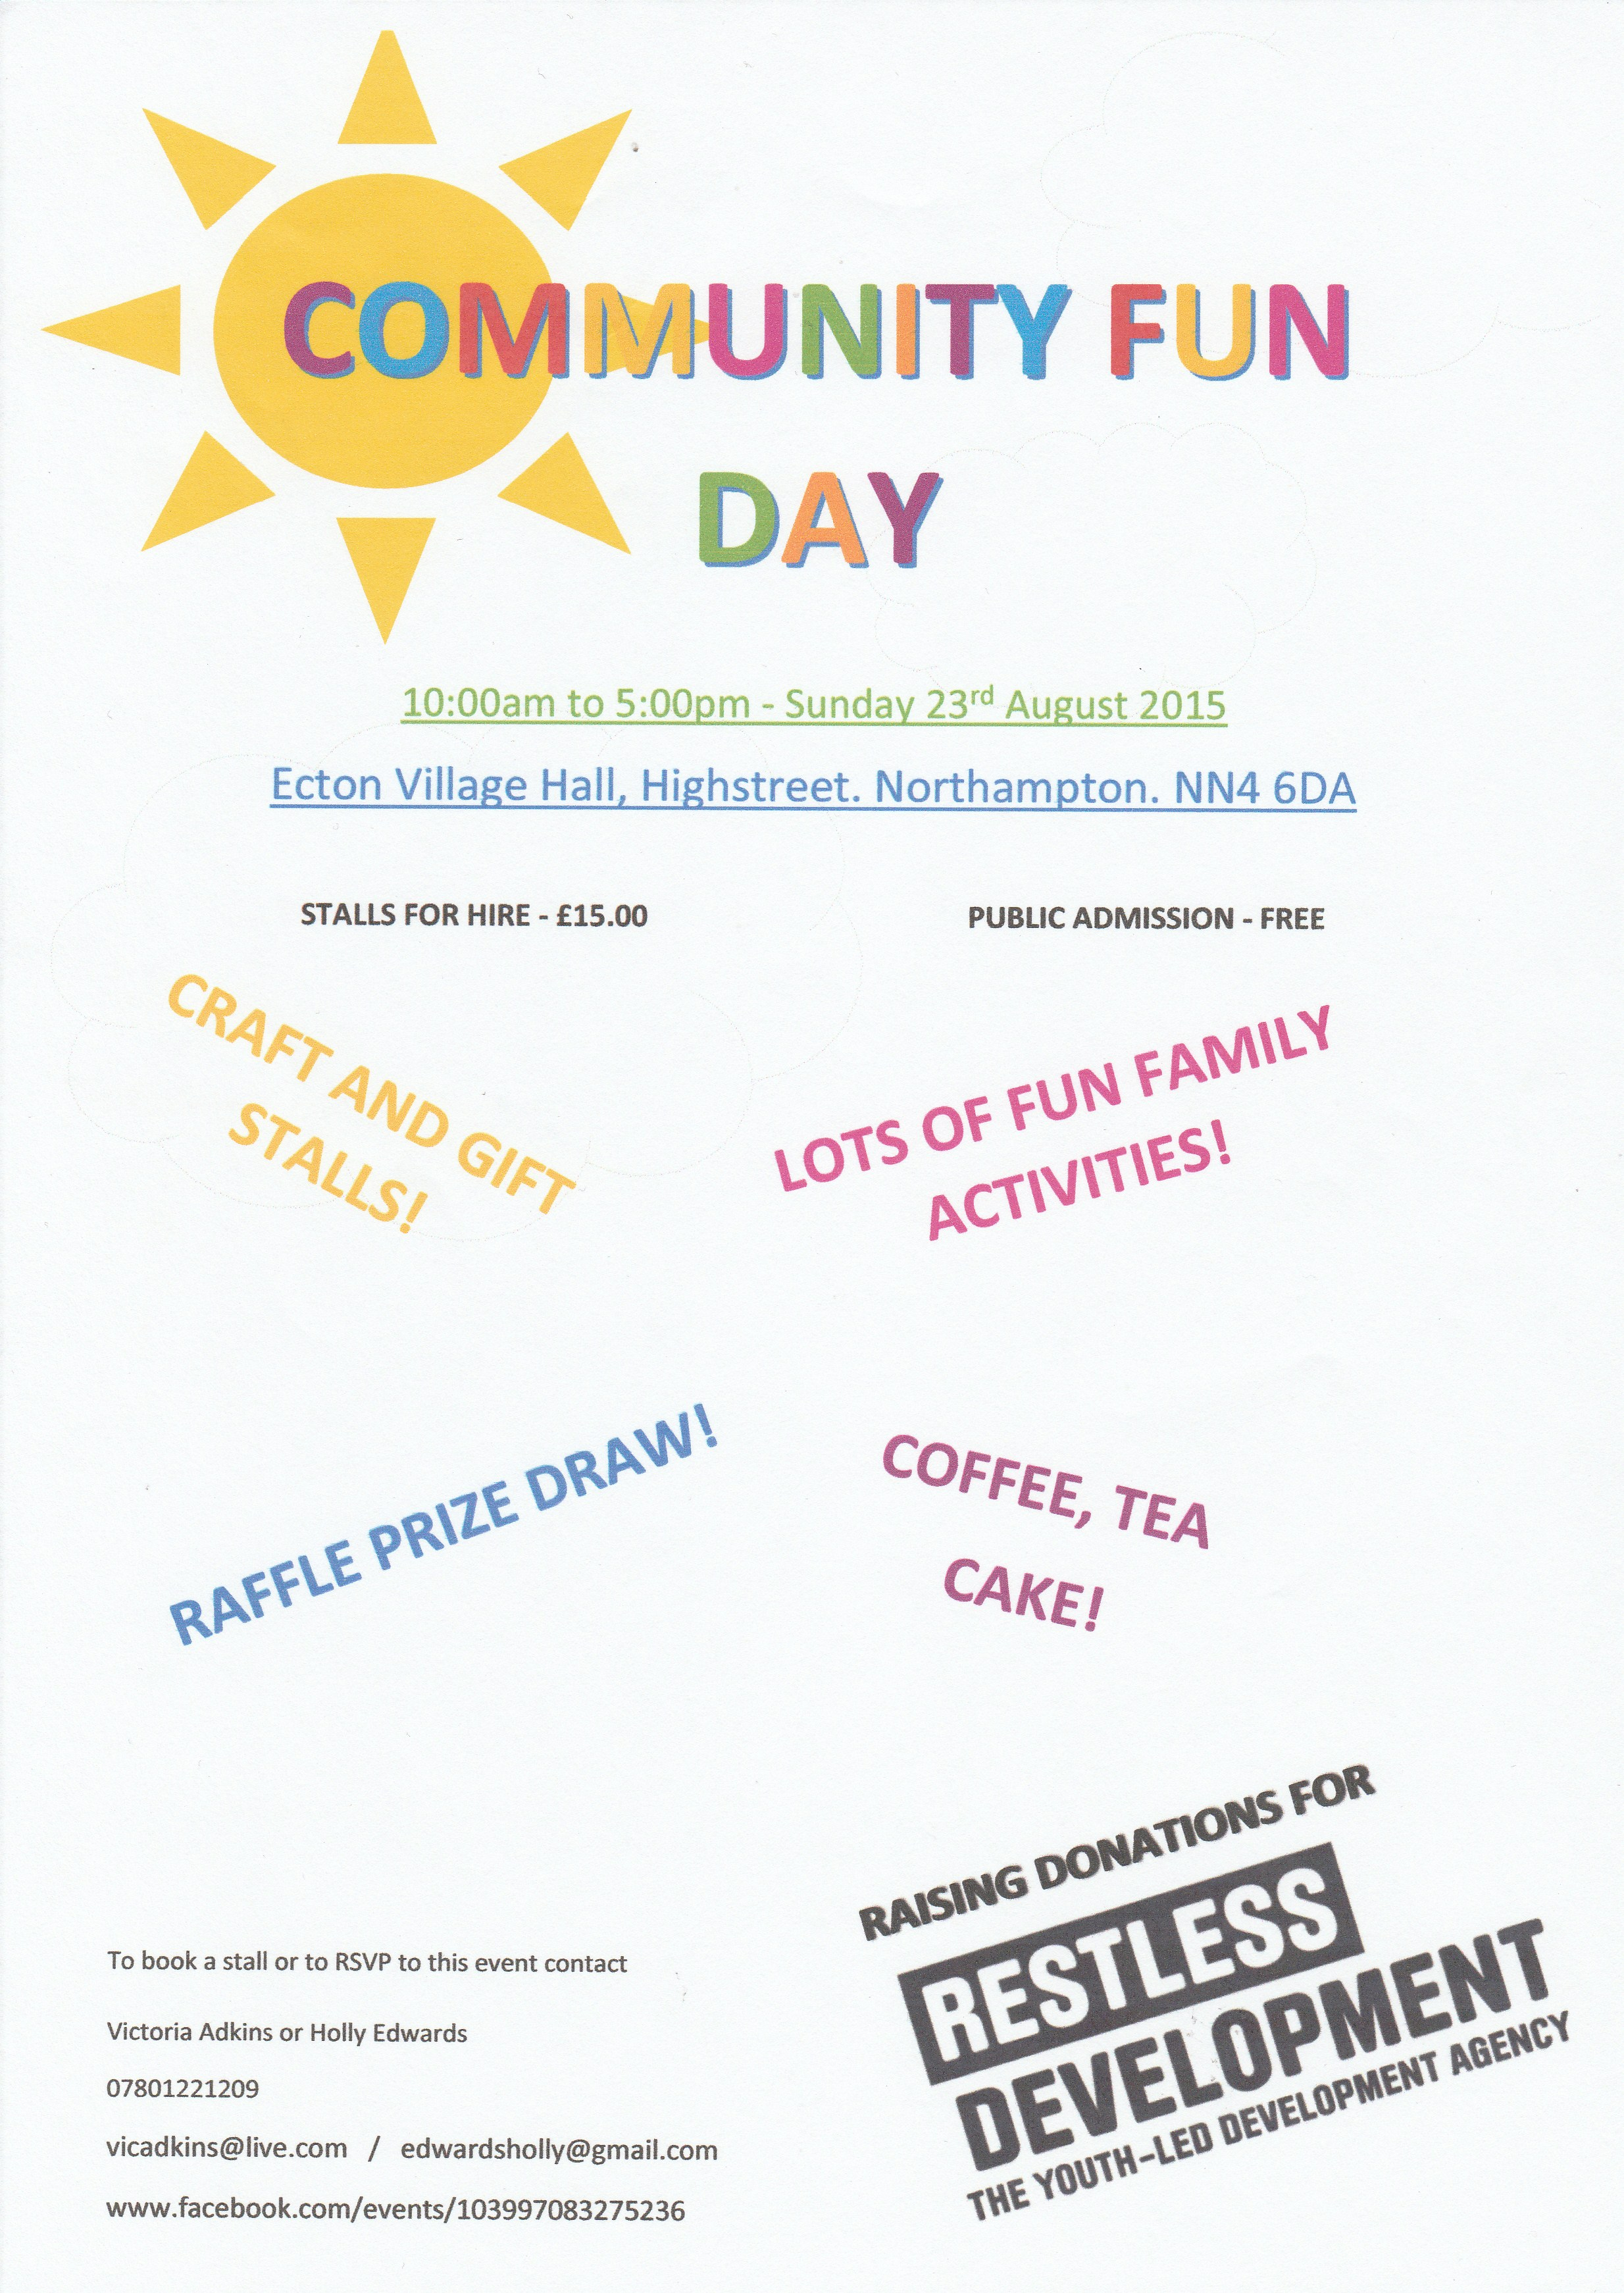 Community Fun Day at Ecton  Vilage Hall!  10am-5pm, Sunday 23rd August 2015  Free Admission, Stalls for hire £15